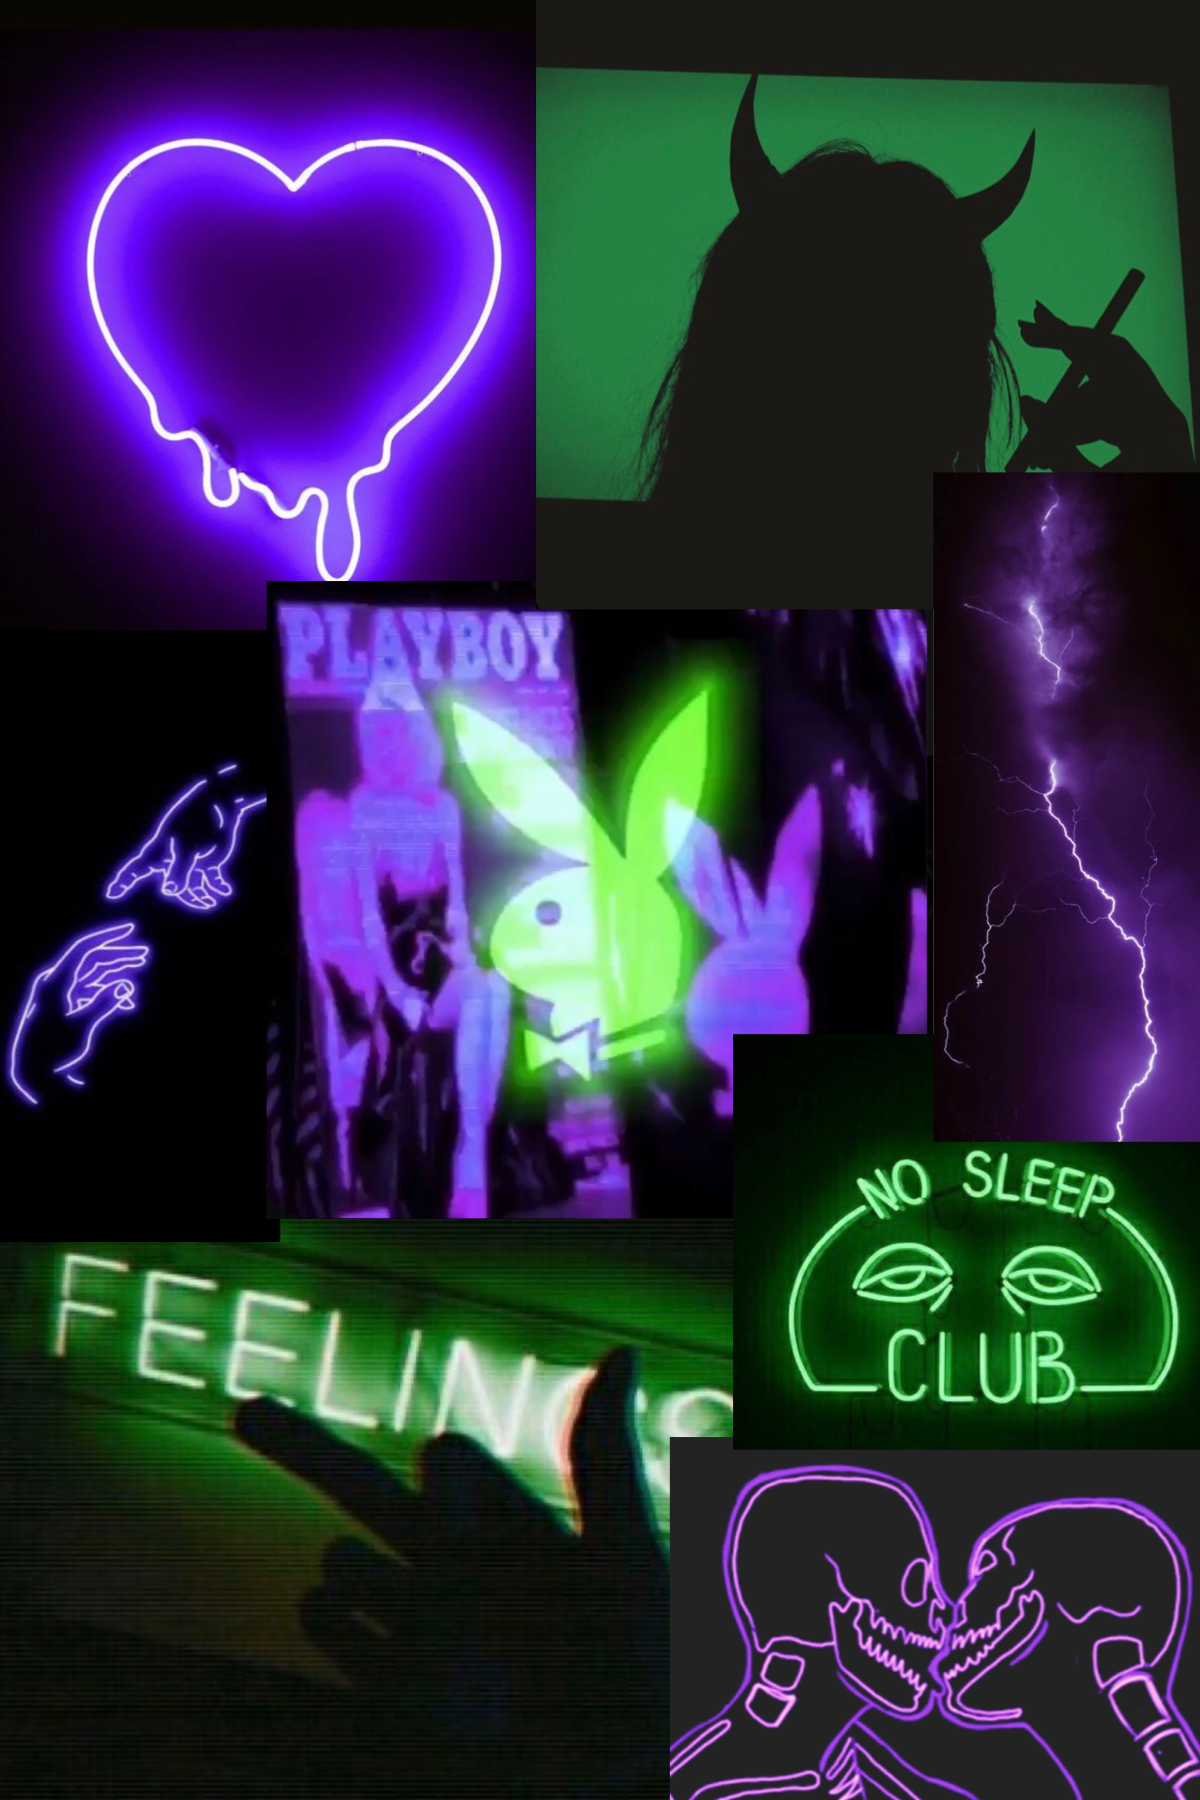 Neon Green And Purple In 2020 Wallpaper Iphone Neon Dark Green Aesthetic Green Aesthetic Tumblr